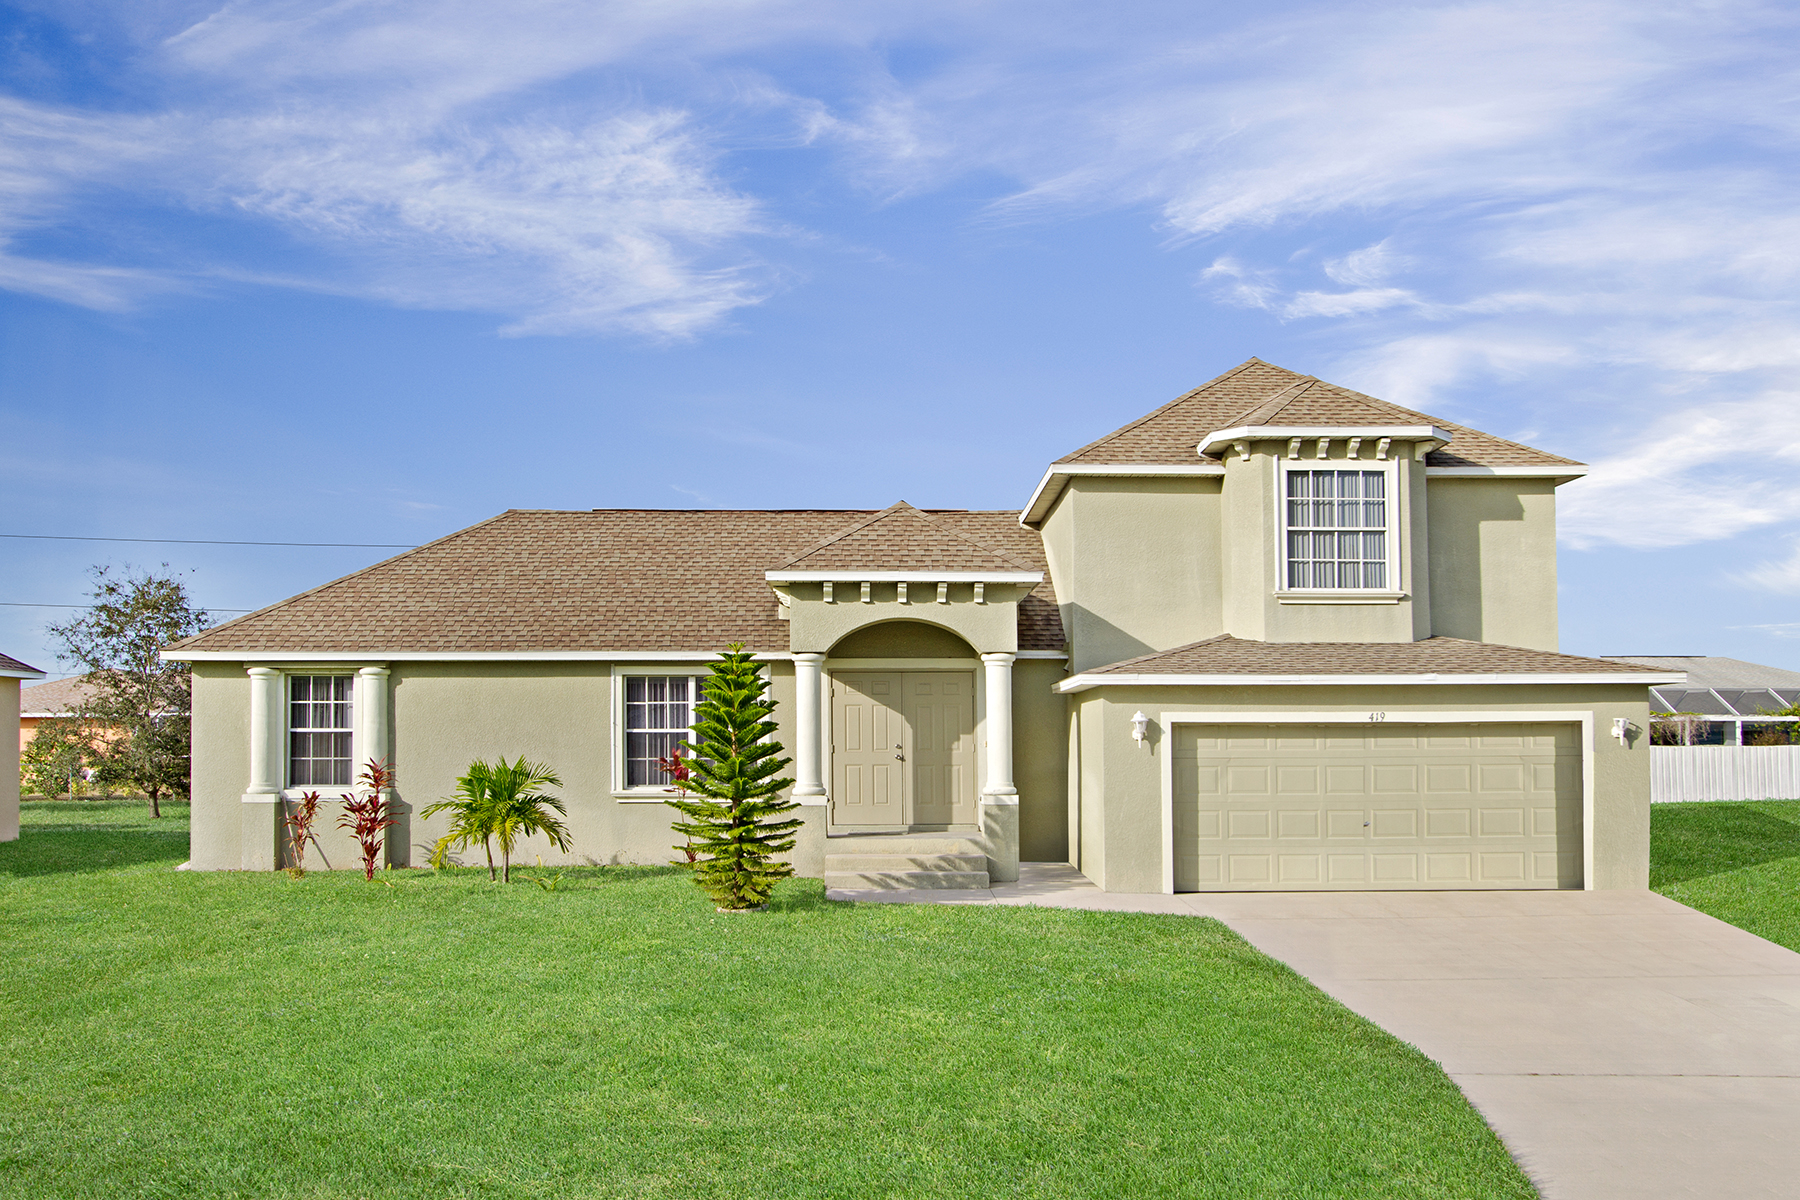 Single Family Home for Sale at CAPE CORAL 419 SE 15th Terr Cape Coral, Florida 33990 United States